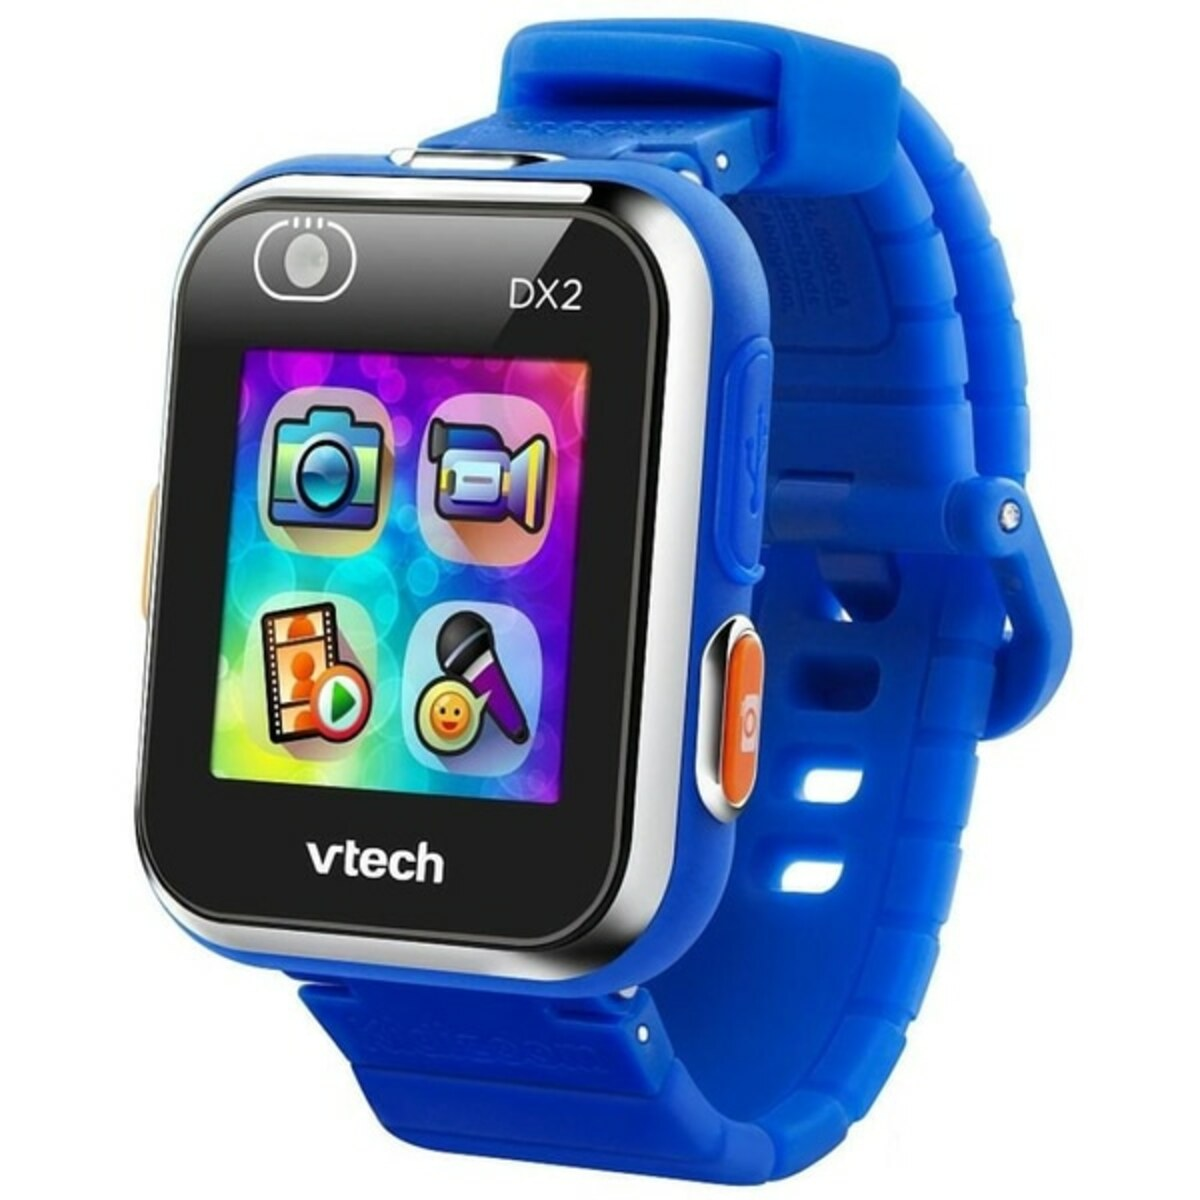 Bild 2 von VTech - Kidizoom: Smart Watch DX2, blau